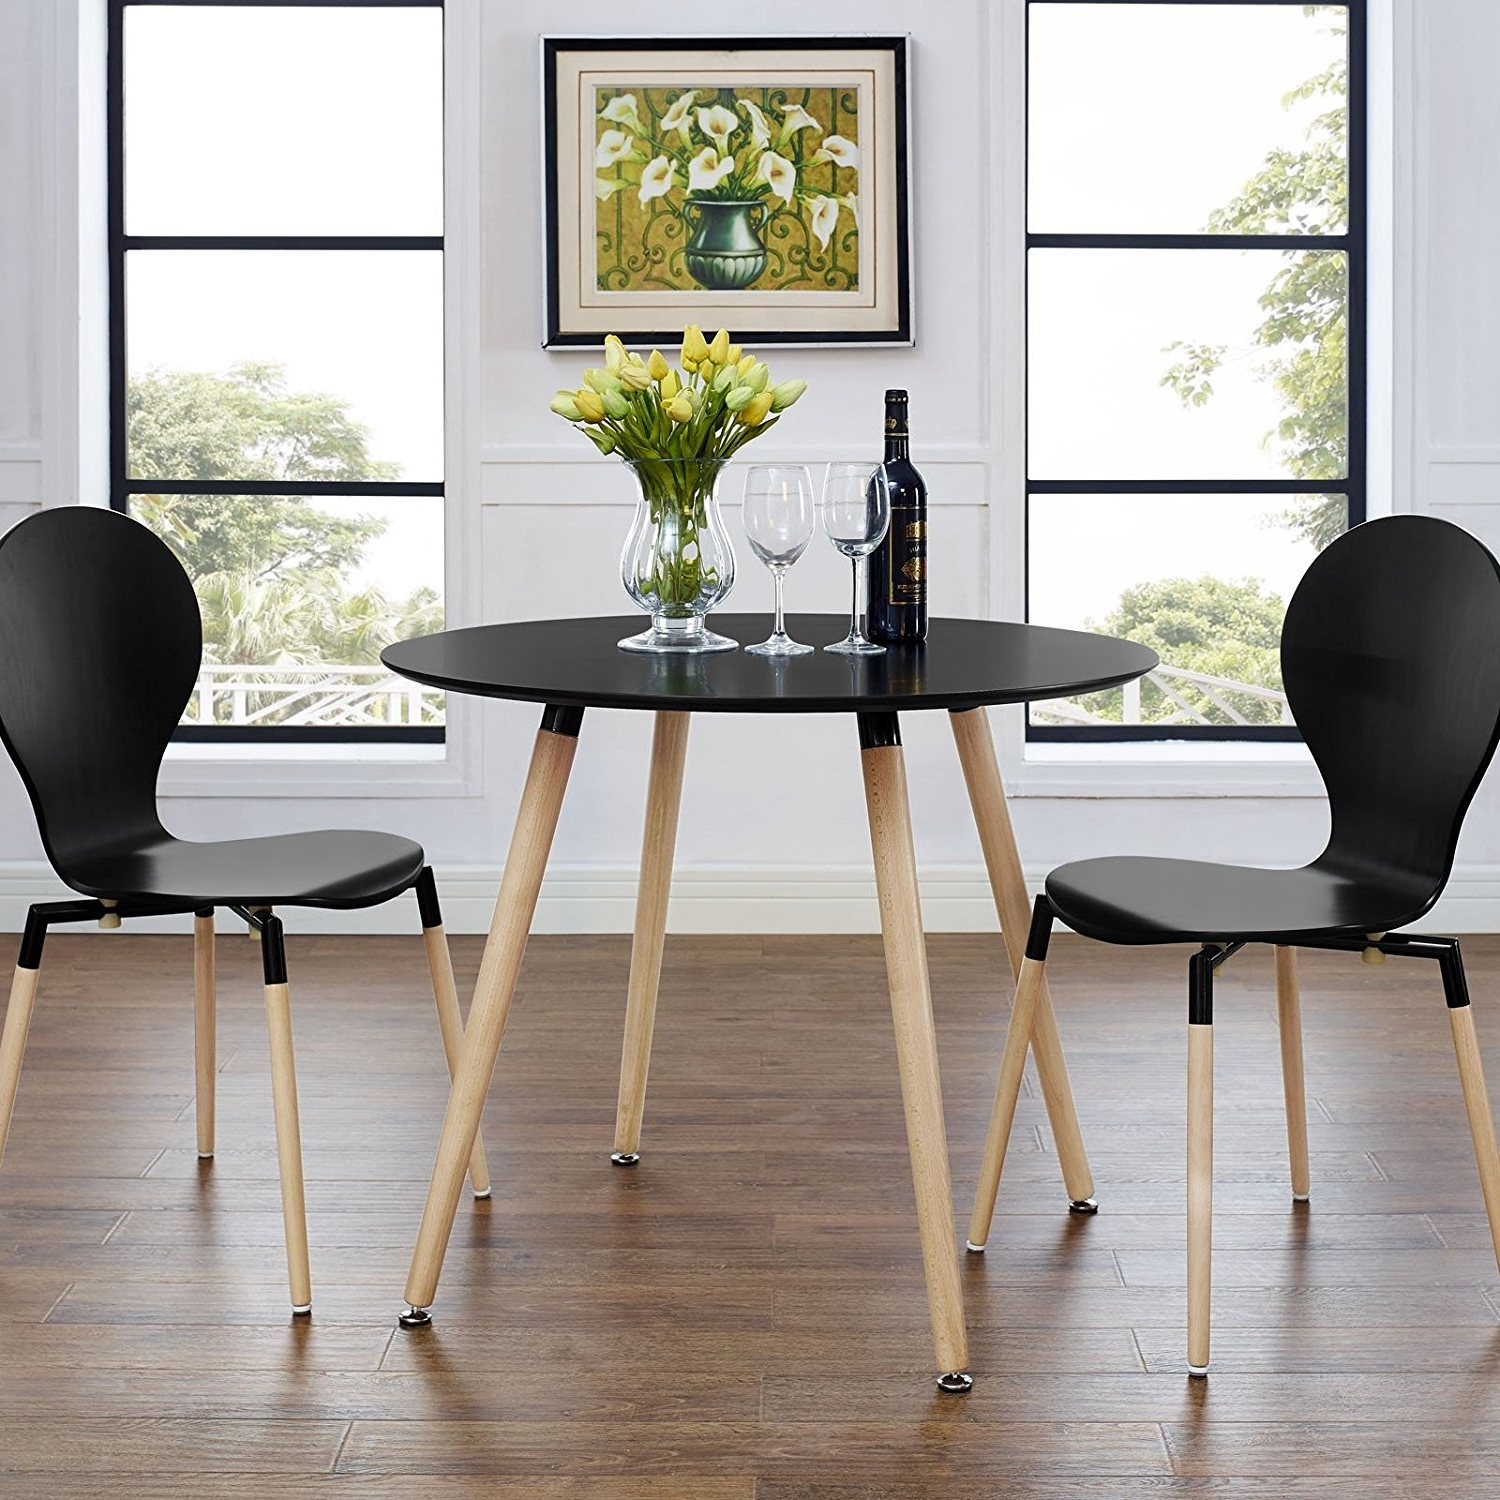 Most Popular Circle Dining Tables Regarding Twenty Dining Tables That Work Great In Small Spaces – Living In A (View 20 of 25)